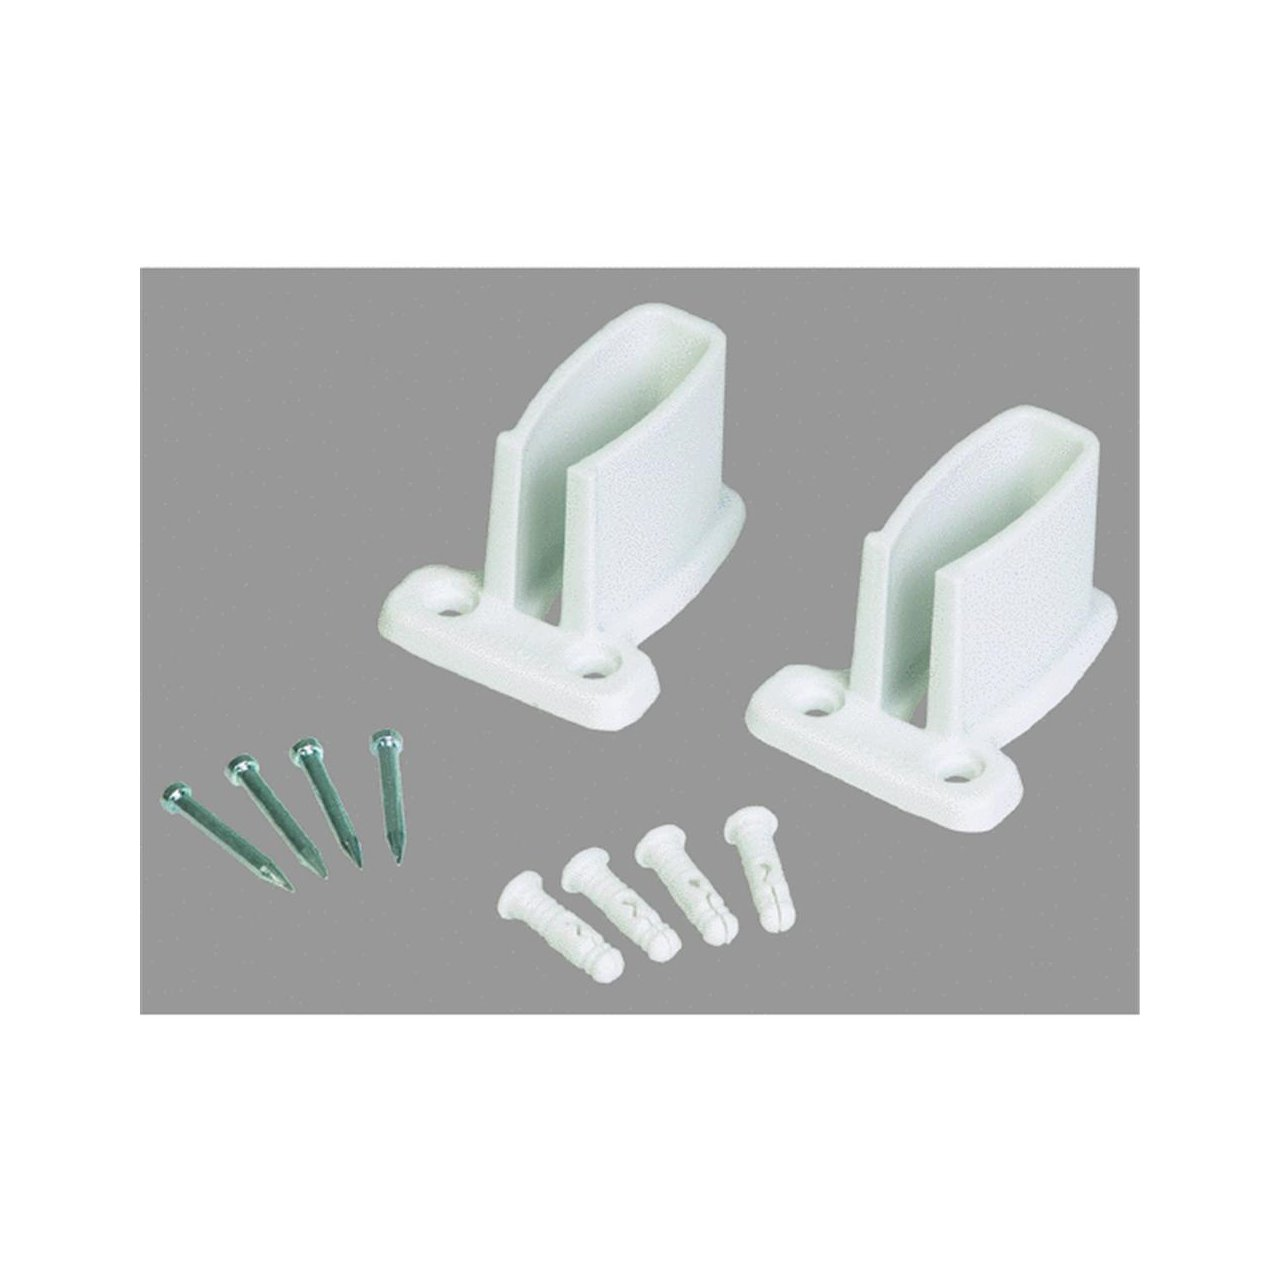 Merveilleux Amazon.com: Organized Living 1464 6621 11 Sidewall Brackets With Trilock  Anchors 2 Count: Home Improvement